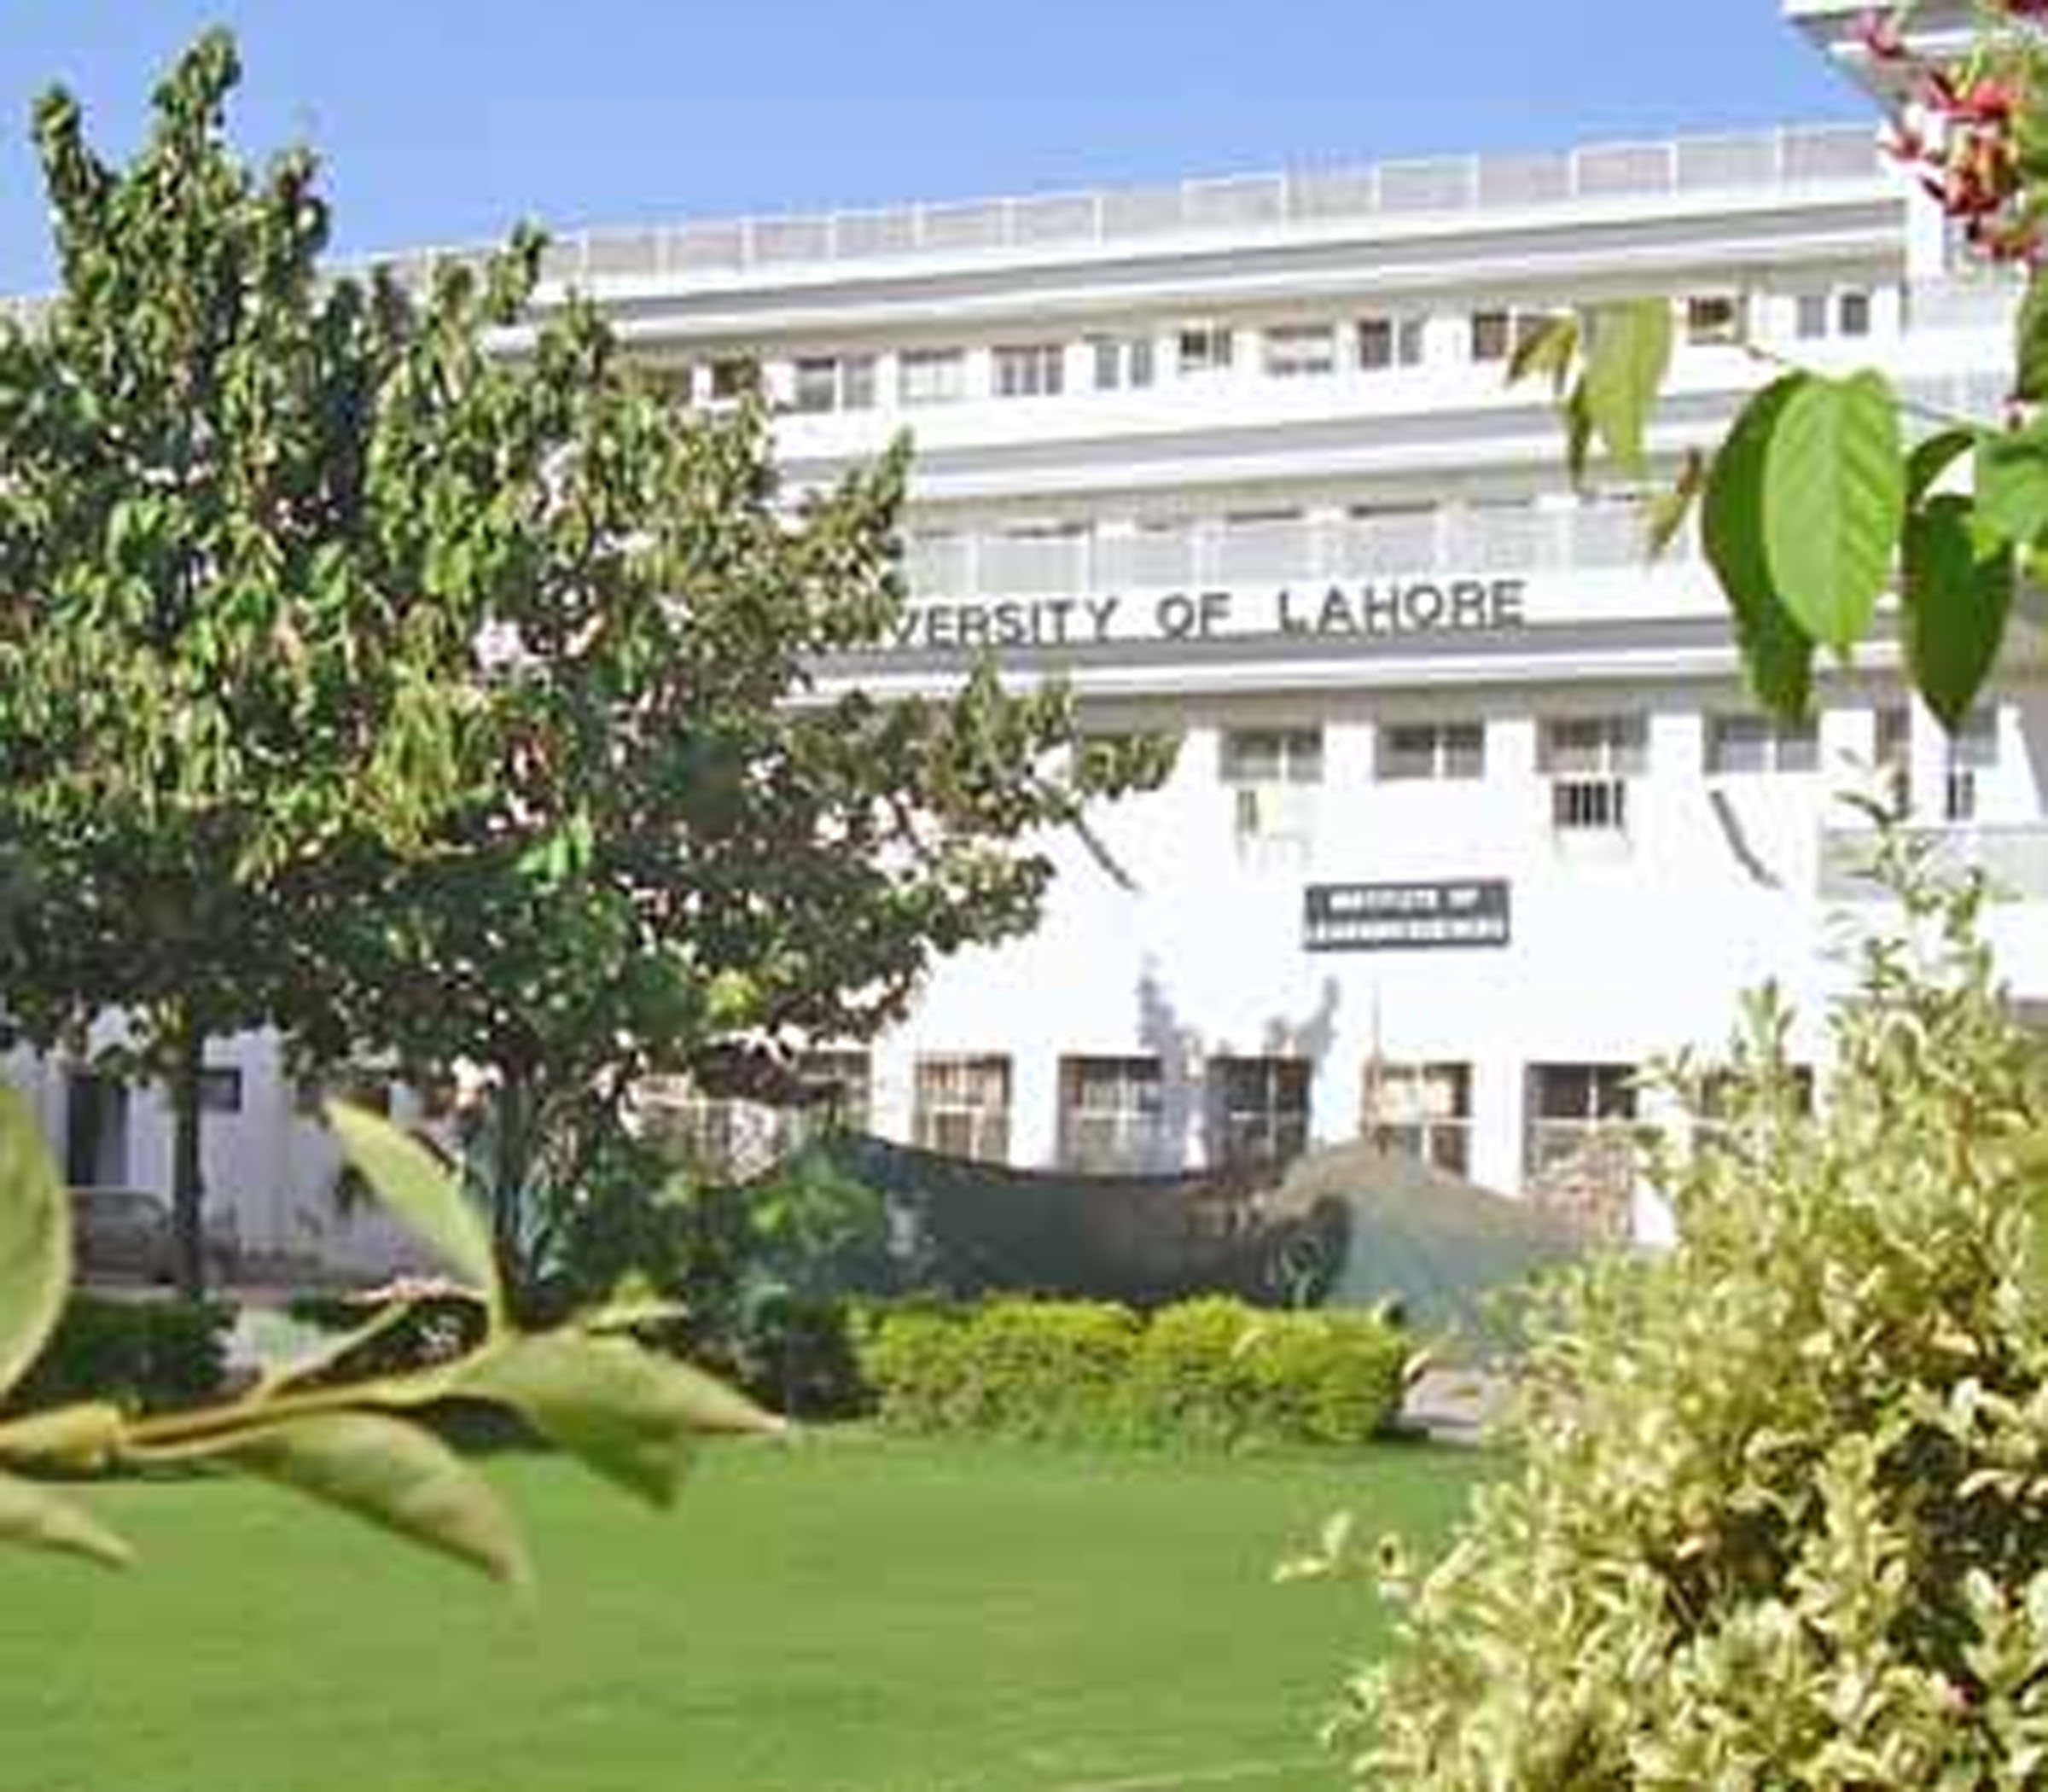 University of Lahore Admission 2020 Islamabad Campus Last date to Apply